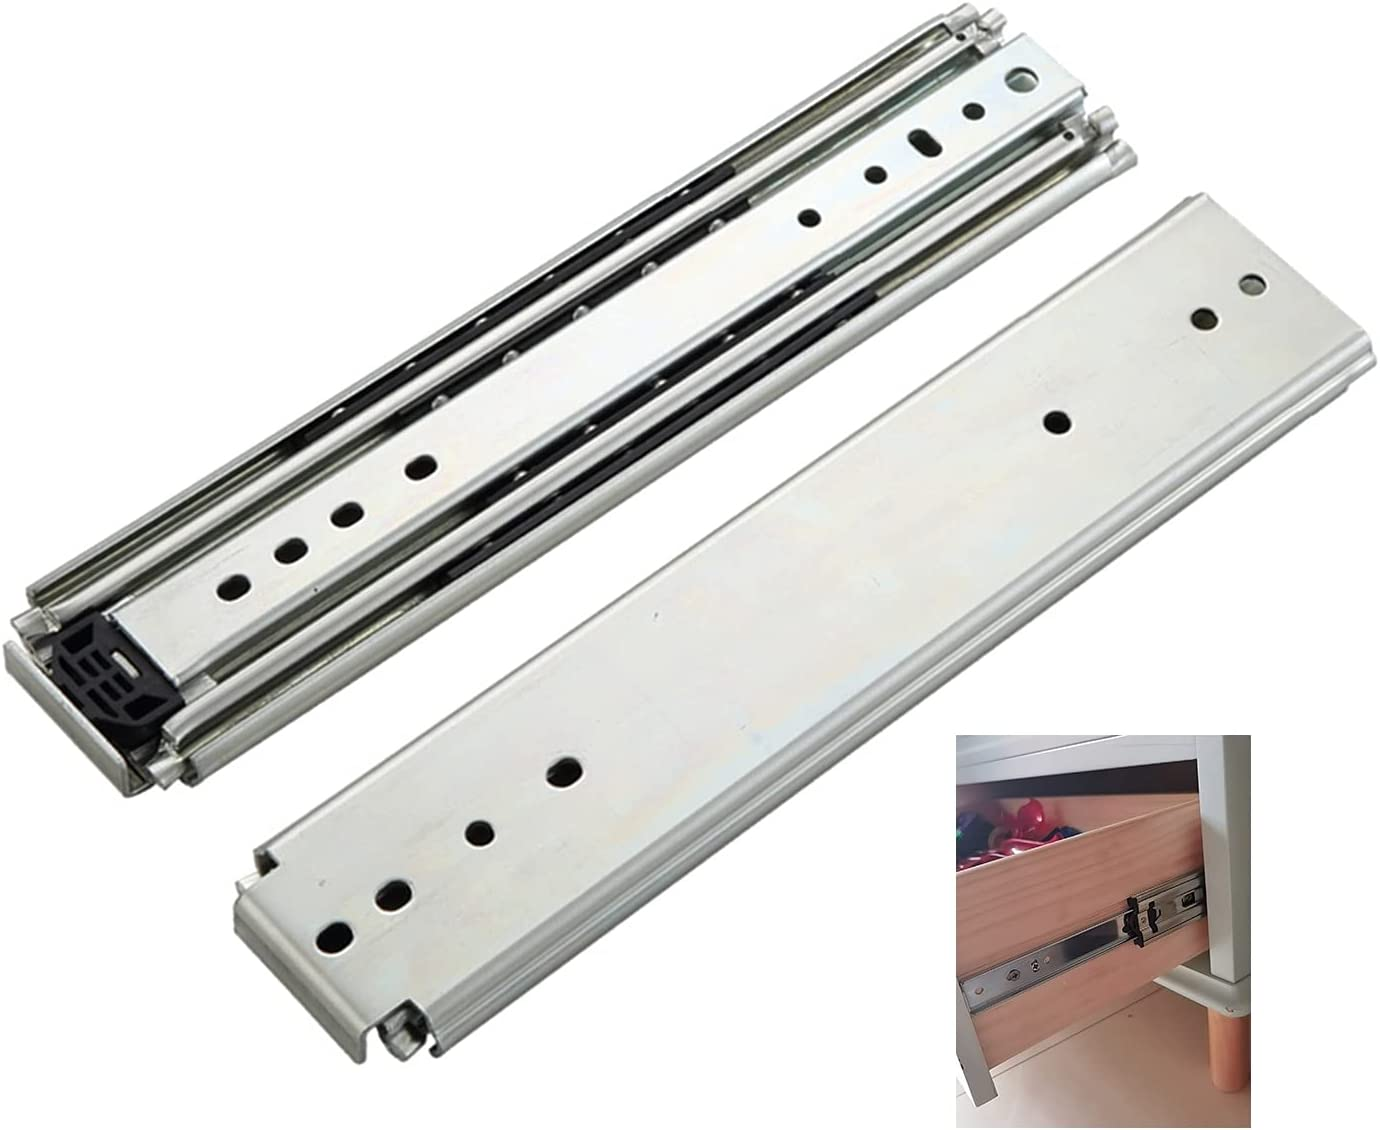 Free Shipping New Drawer slide Rails 10-56 inches 1 Fully Exten favorite Heavy-Duty Pair